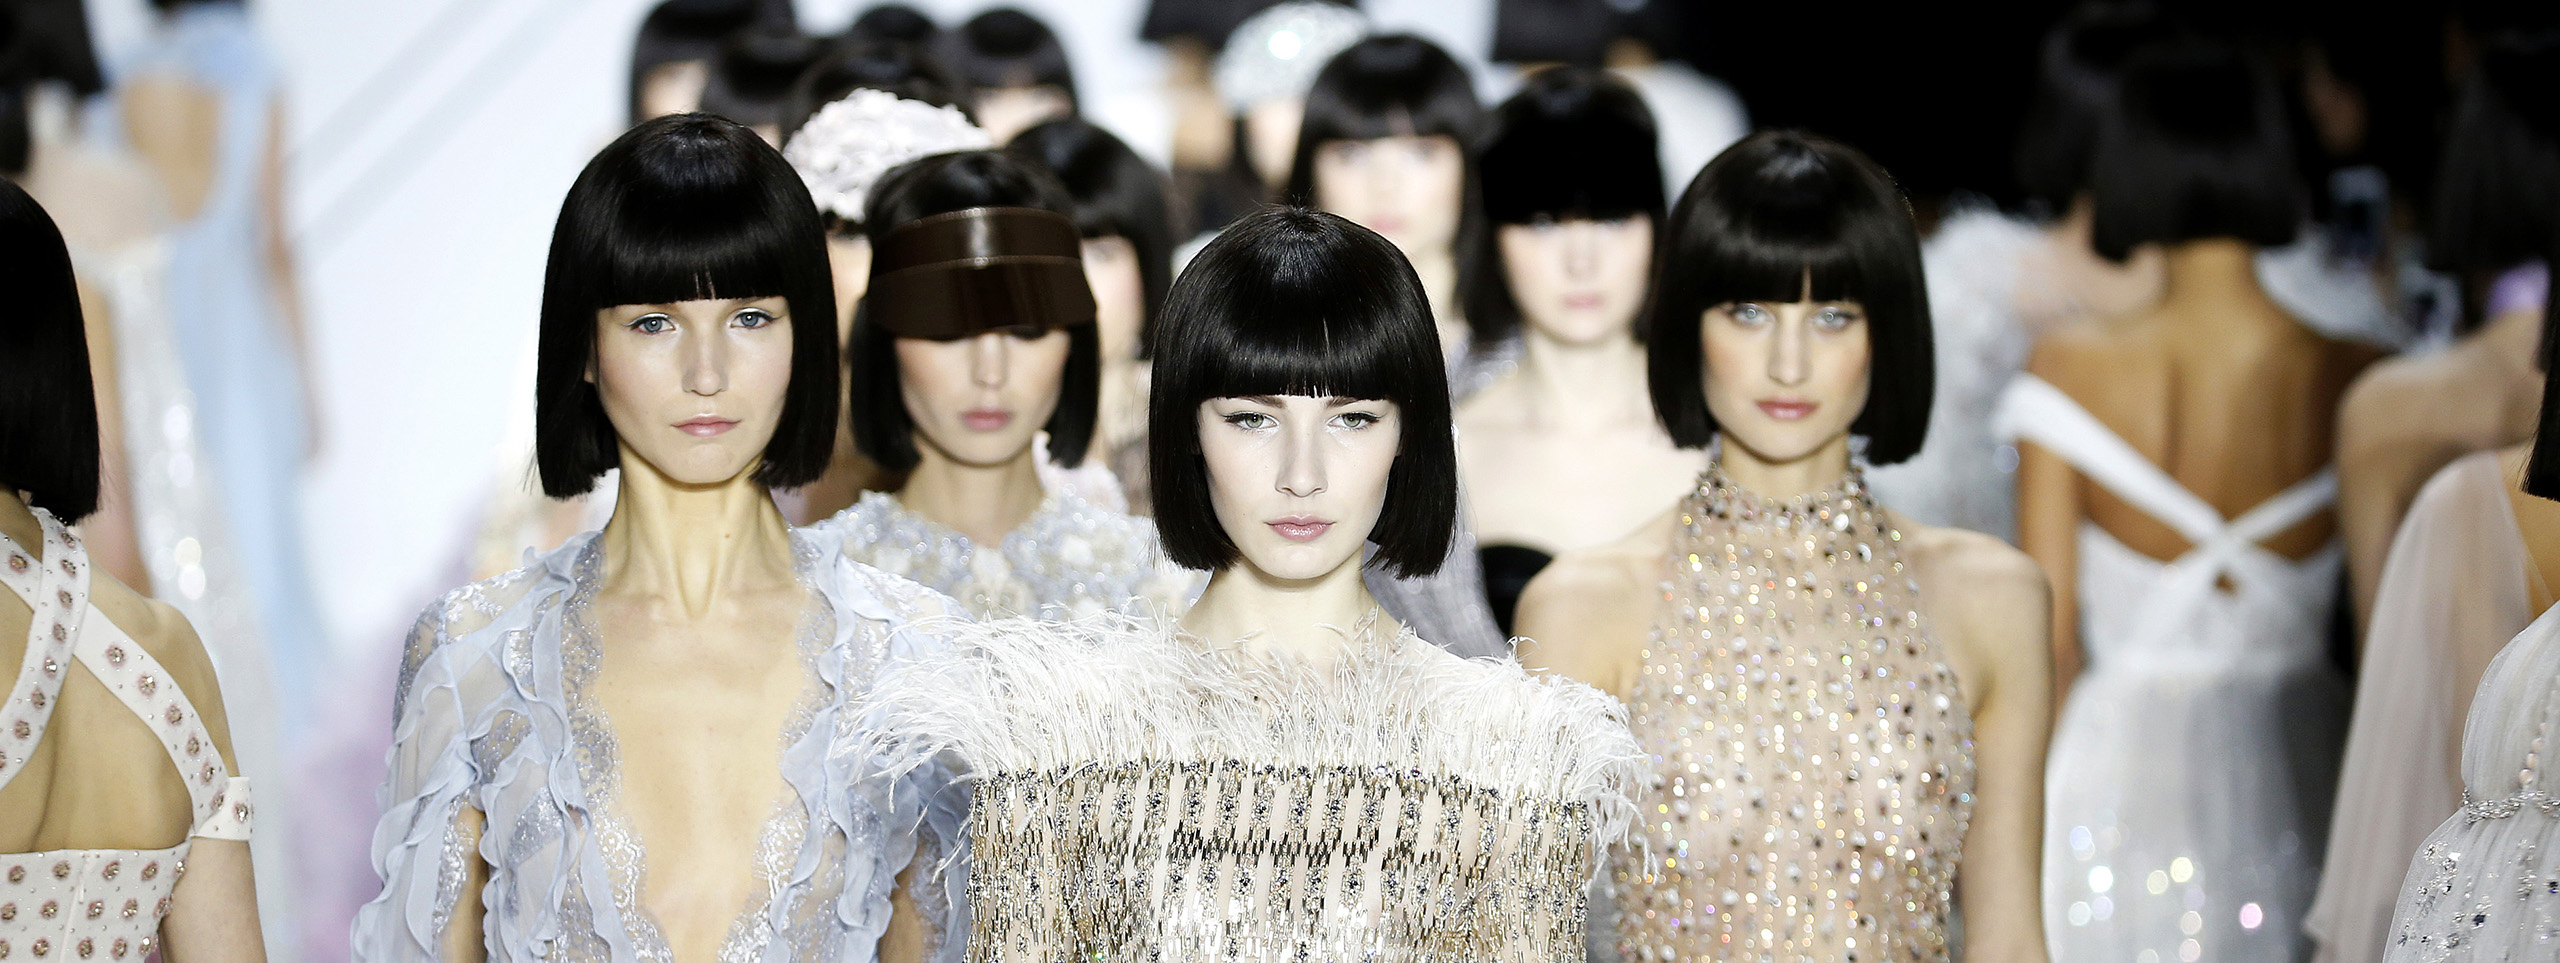 Model with fringe hairstyle on the catwalk.